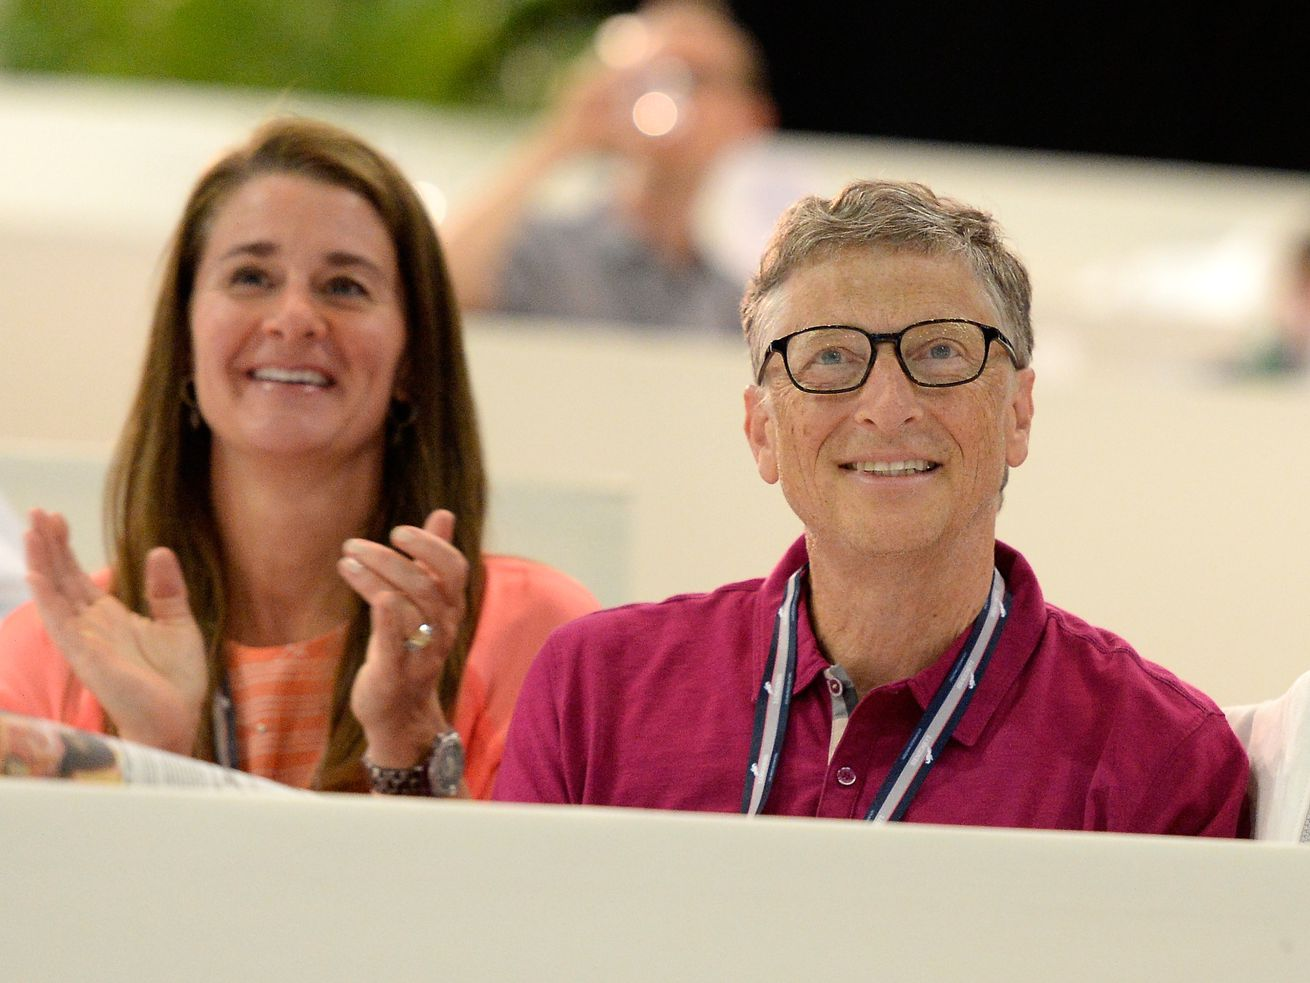 Bill and Melinda Gates watch their daughter Jennifer perform during The Hollywood Reporter Trophy class at Longines Los Angeles Masters at Los Angeles Convention Center on September 27, 2014 in Los Angeles, California.